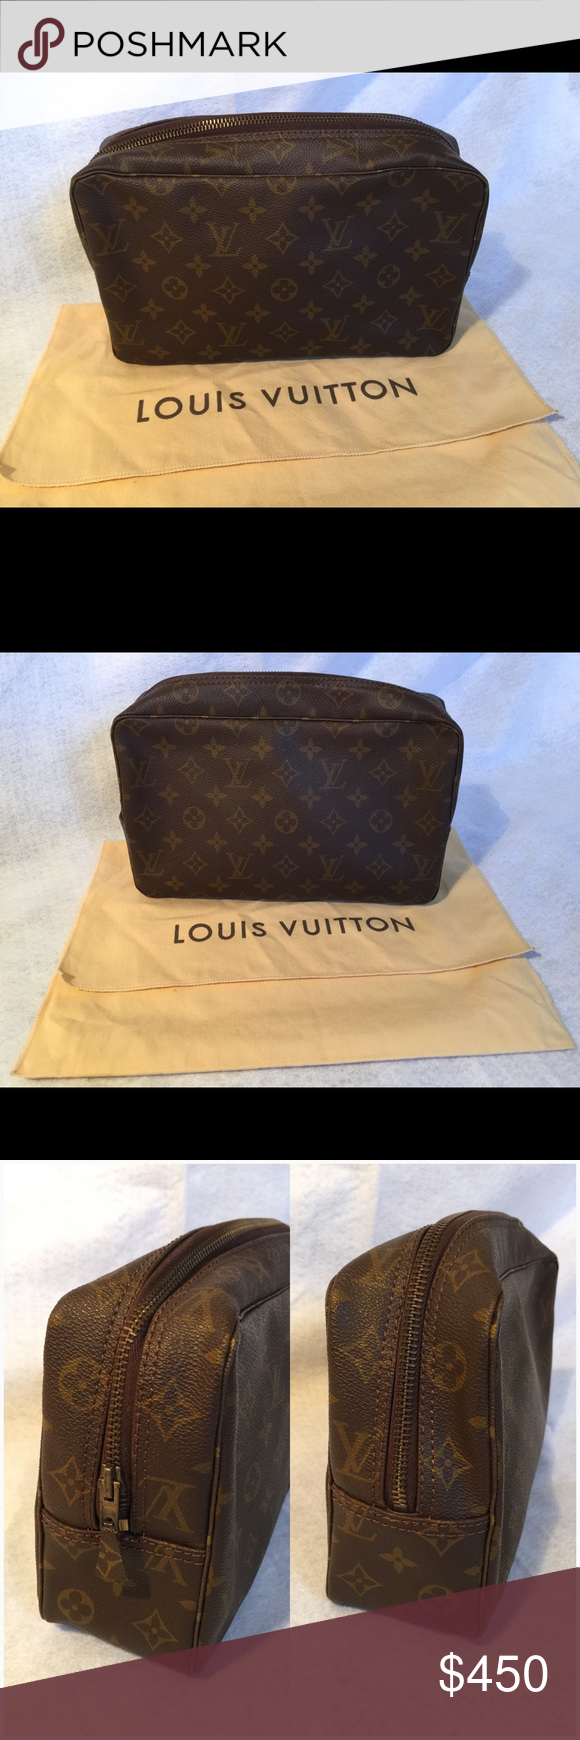 Authentic Vintage Louis Vuitton Cosmetic bag Pre owned Auth Vintage LOUIS  VUITTON Monogram Trousse Toilette 28 d514cfa963386